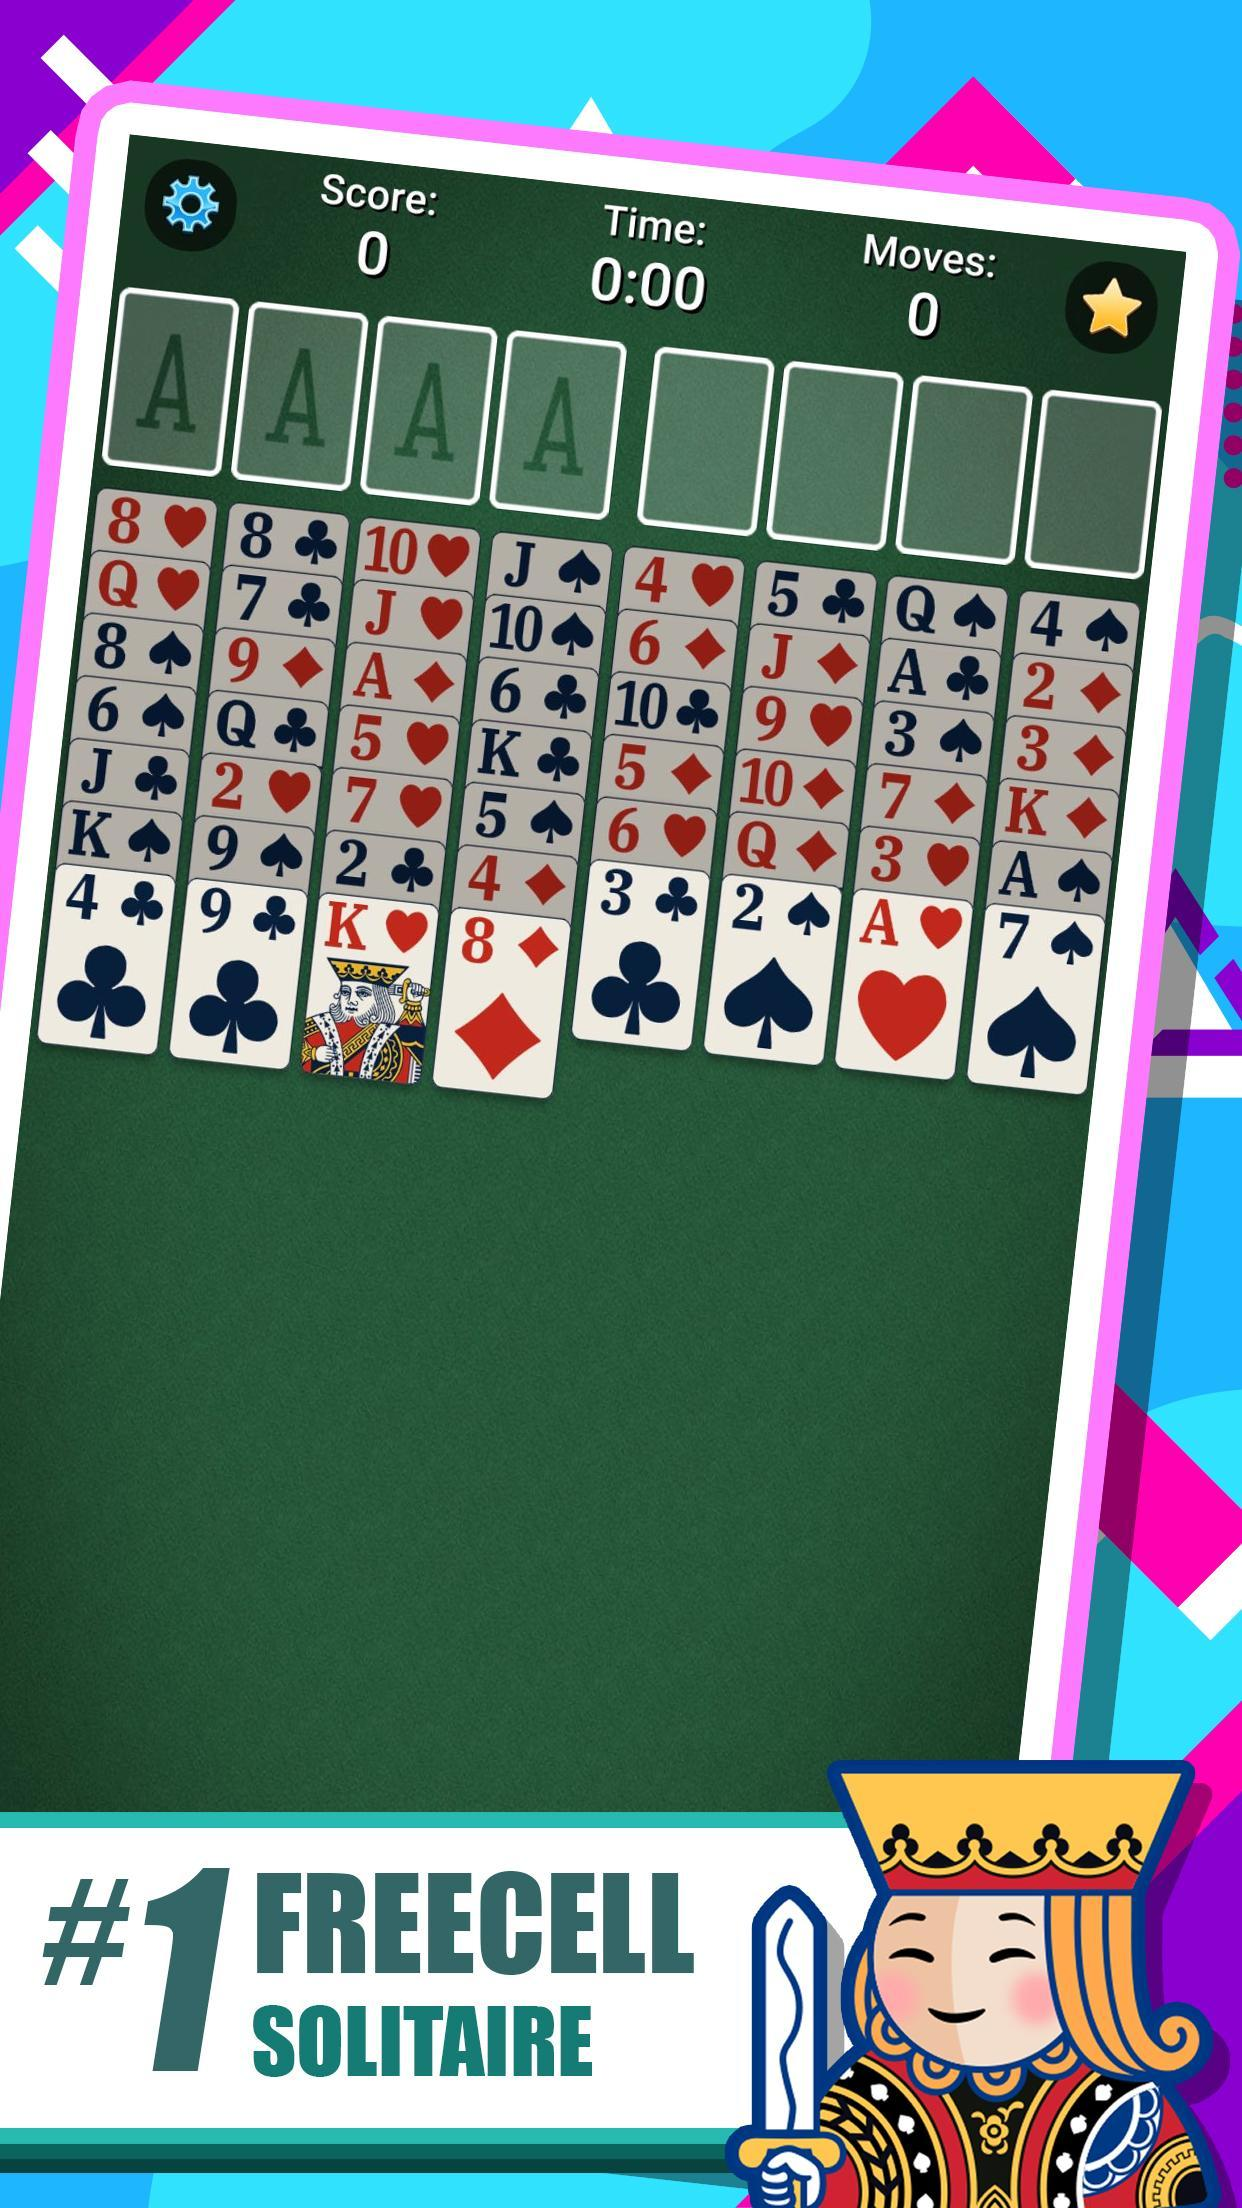 Windows xp games freecell download